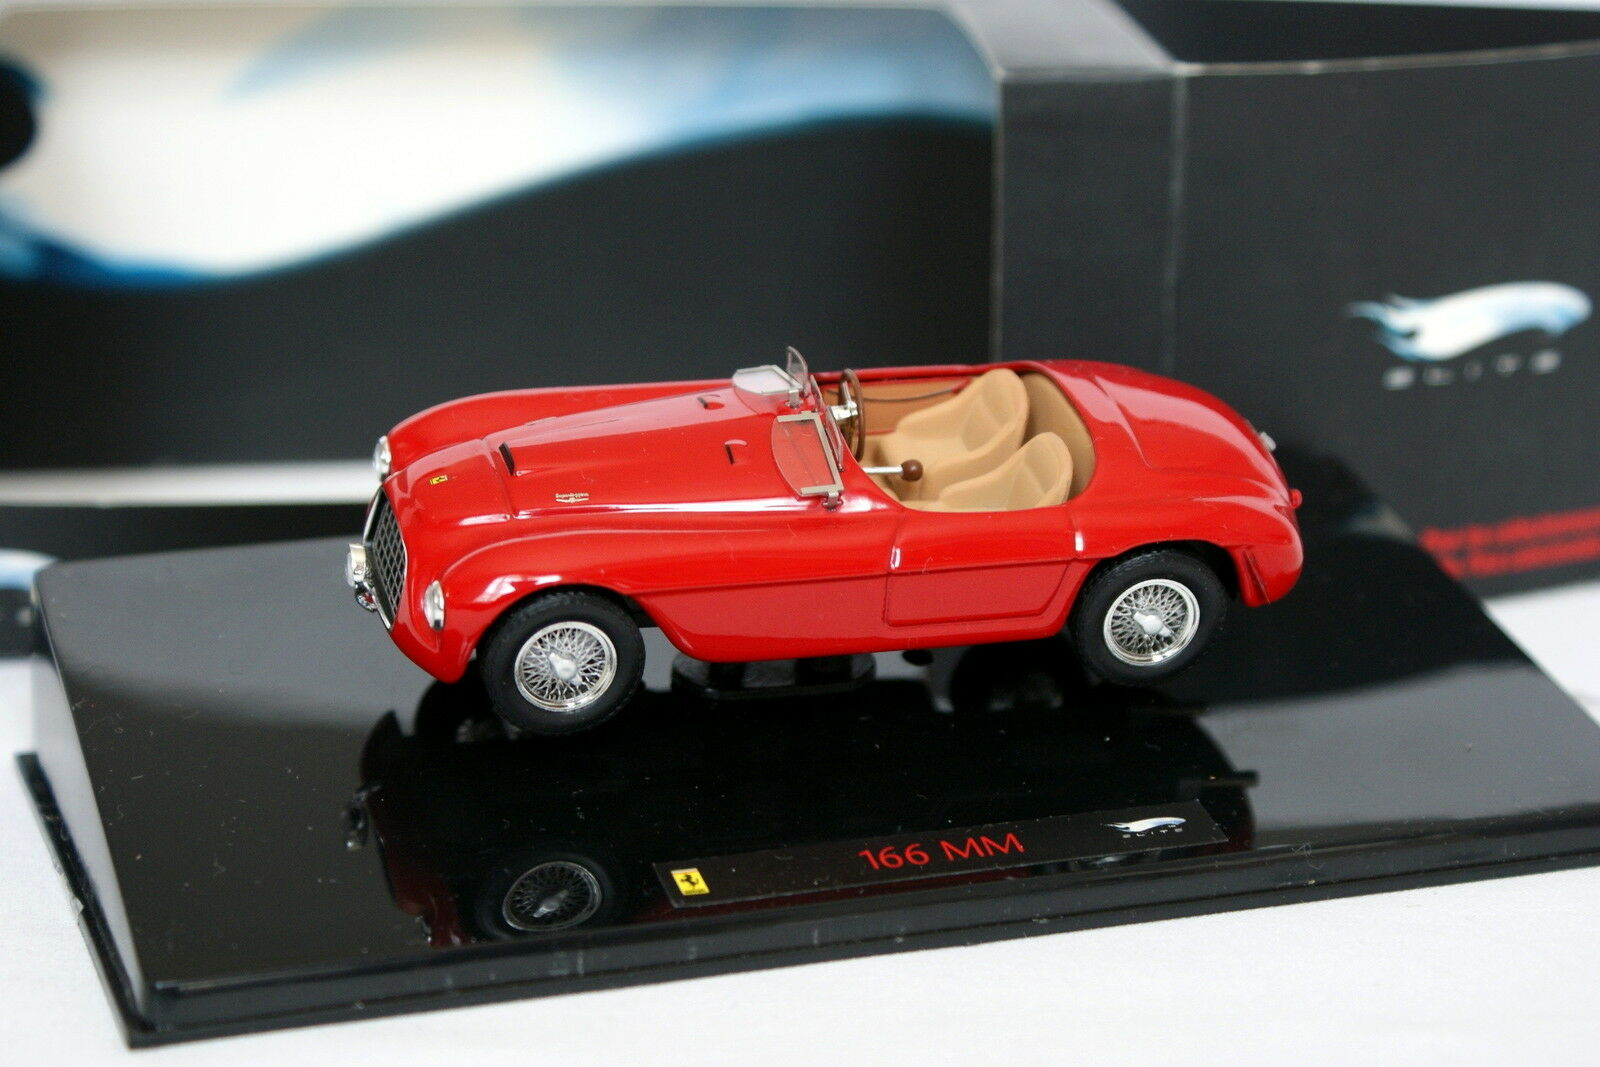 Hot Wheels 1 43 - Ferrari 166 MM Red